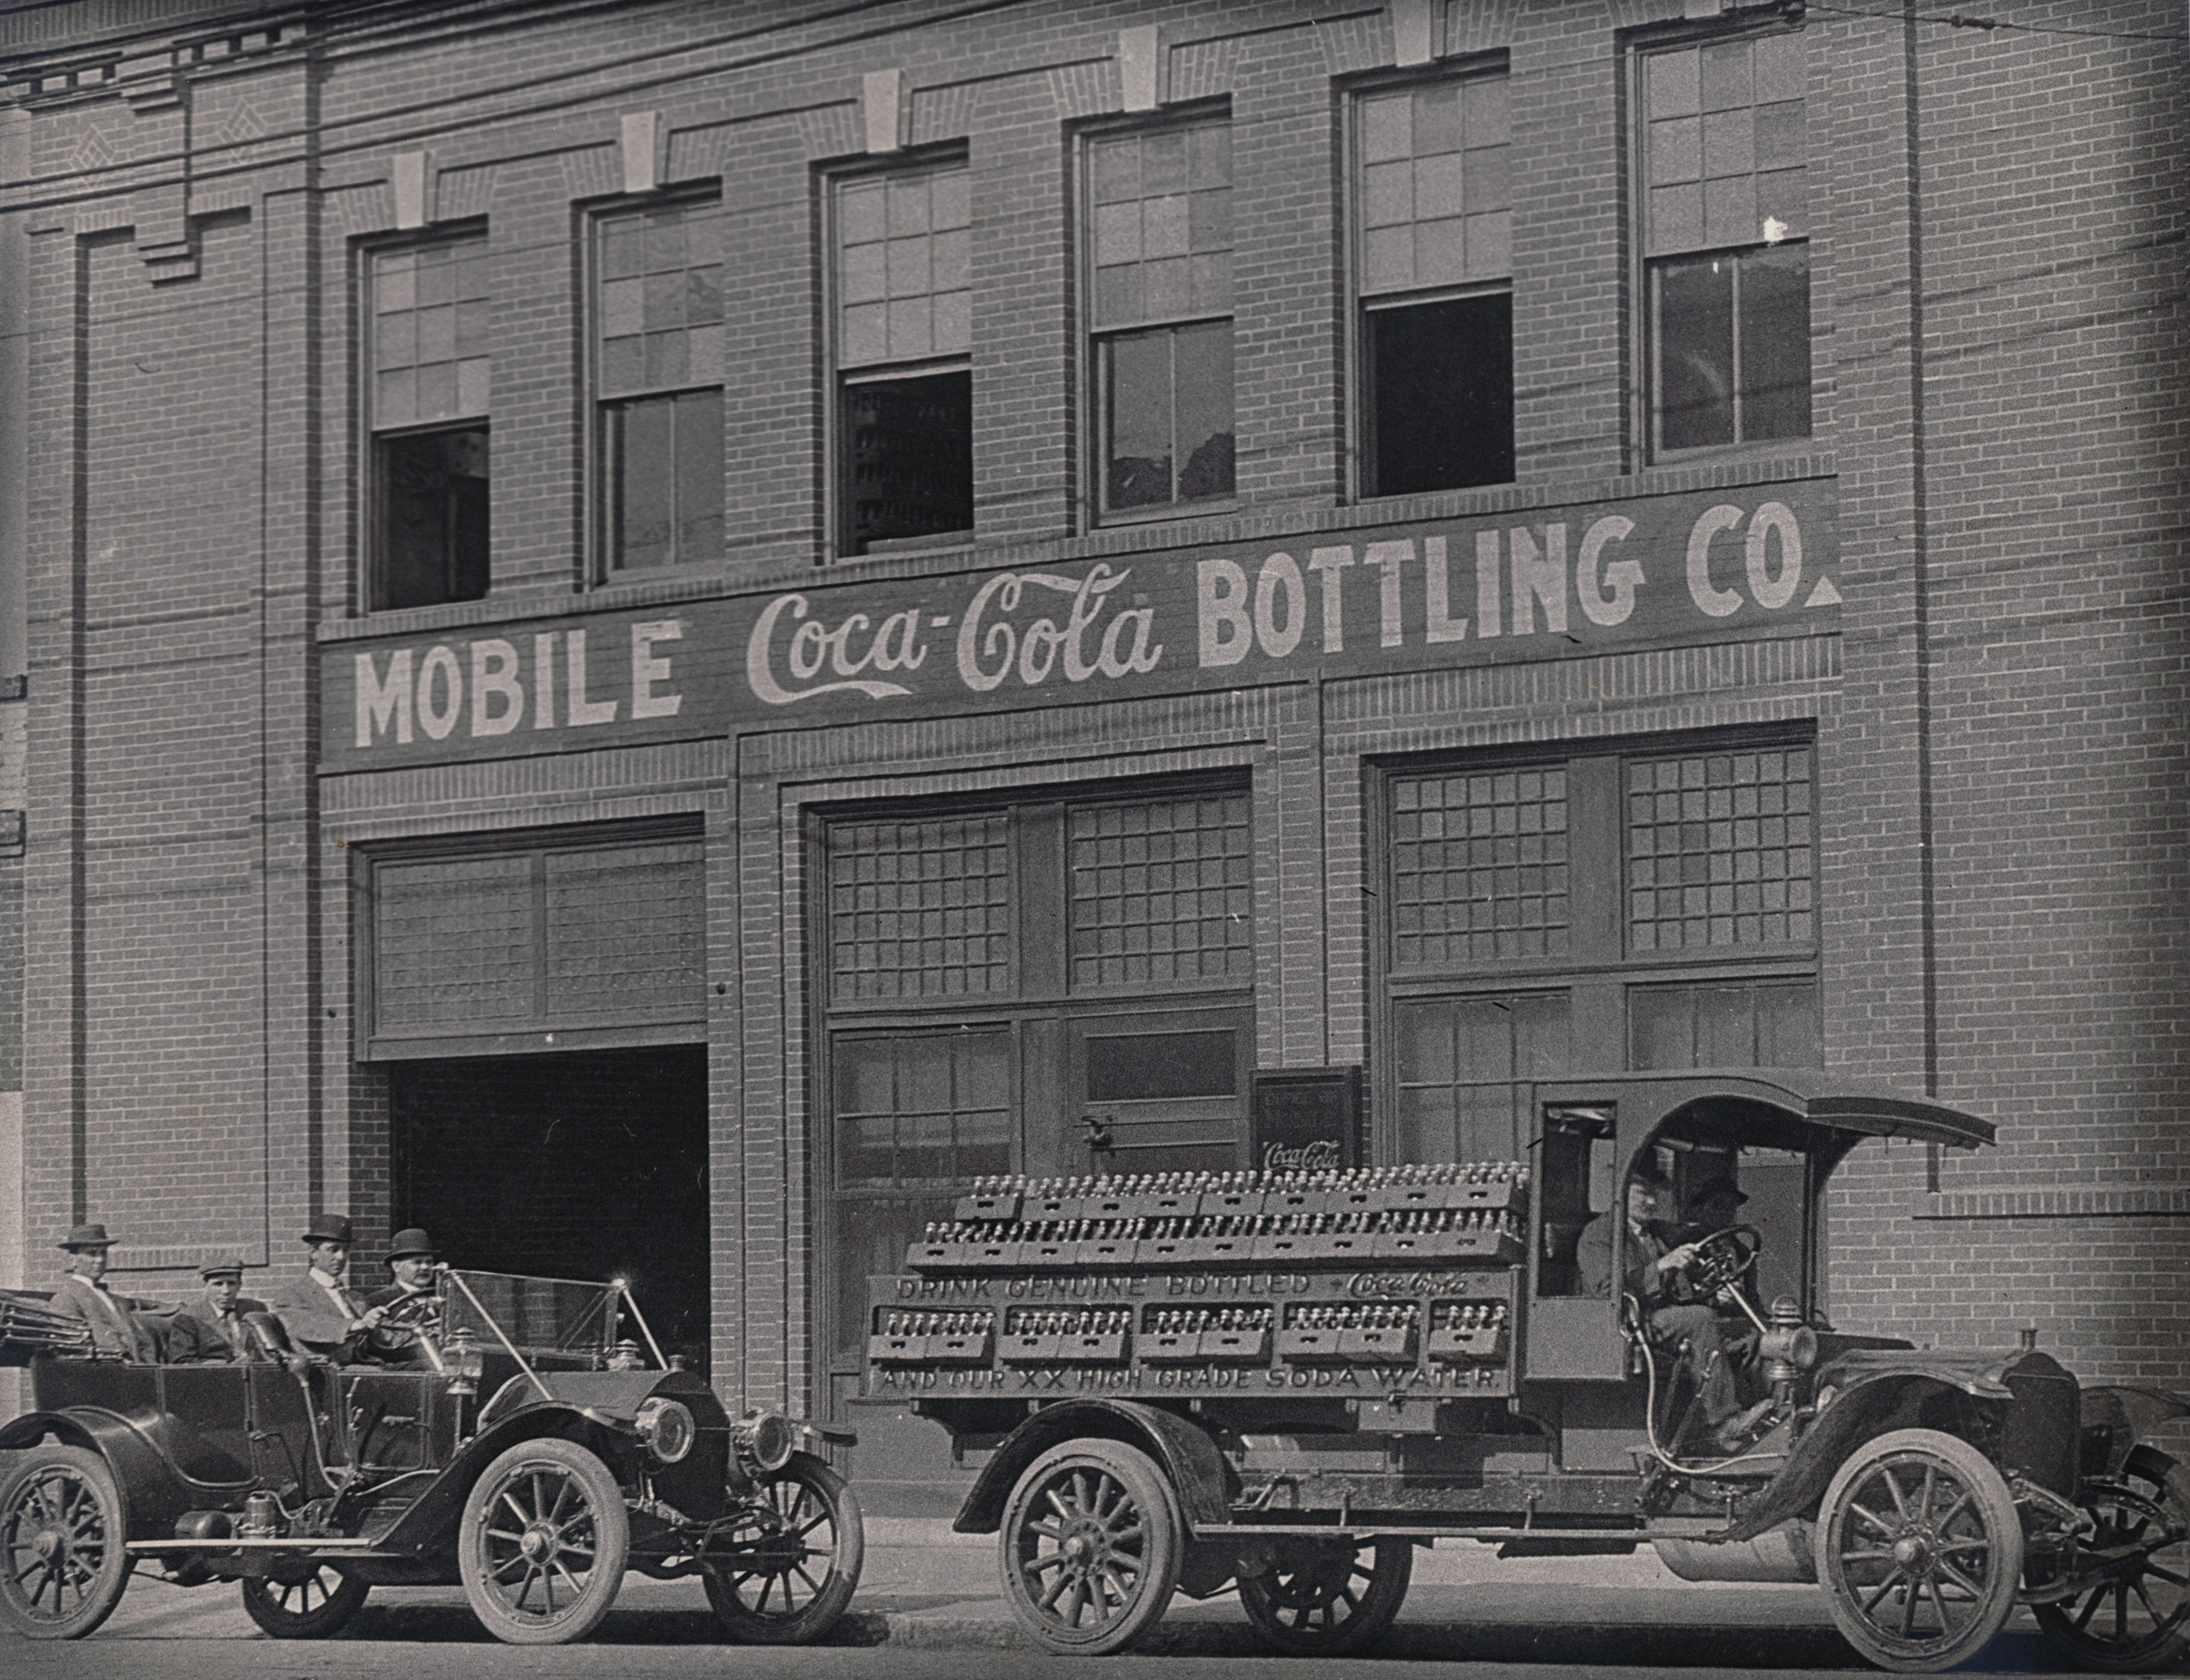 The Bellingrath Coca-Cola plant on Royal Street in downtown Mobile.